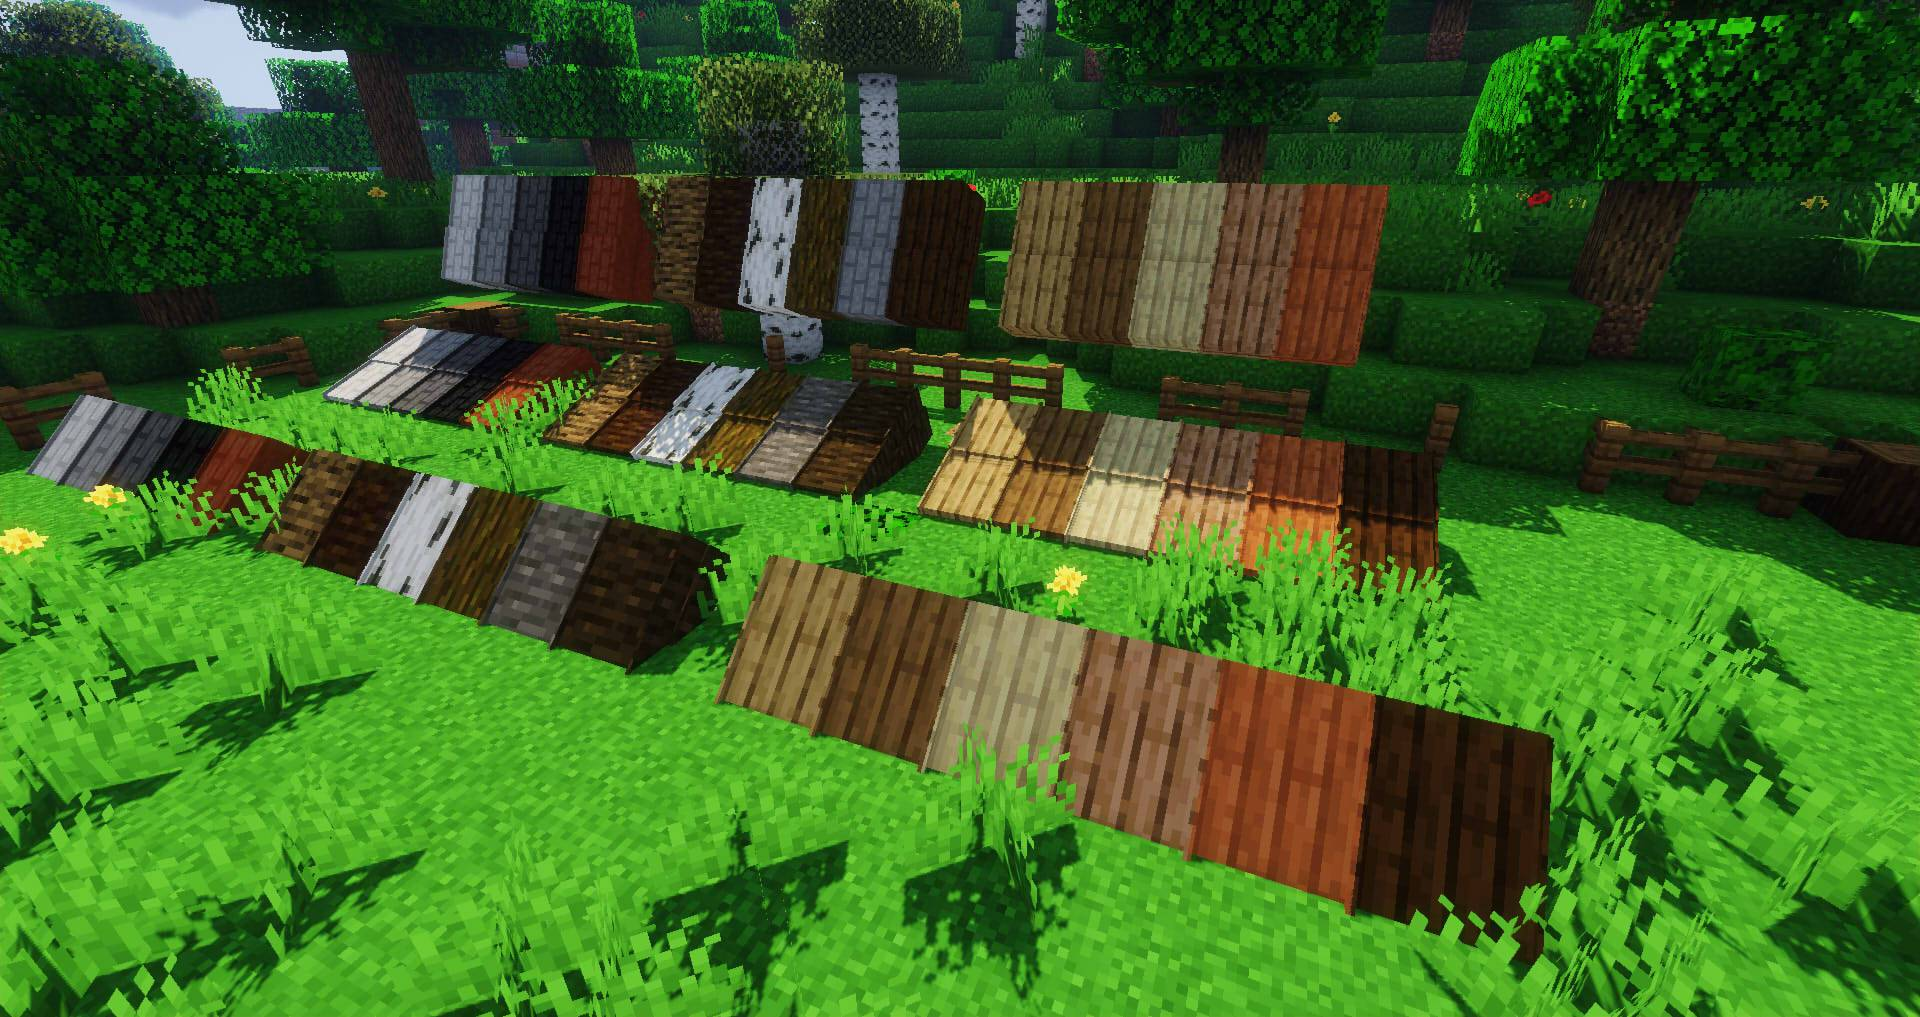 Macaw_s Roofs mod for minecraft 27